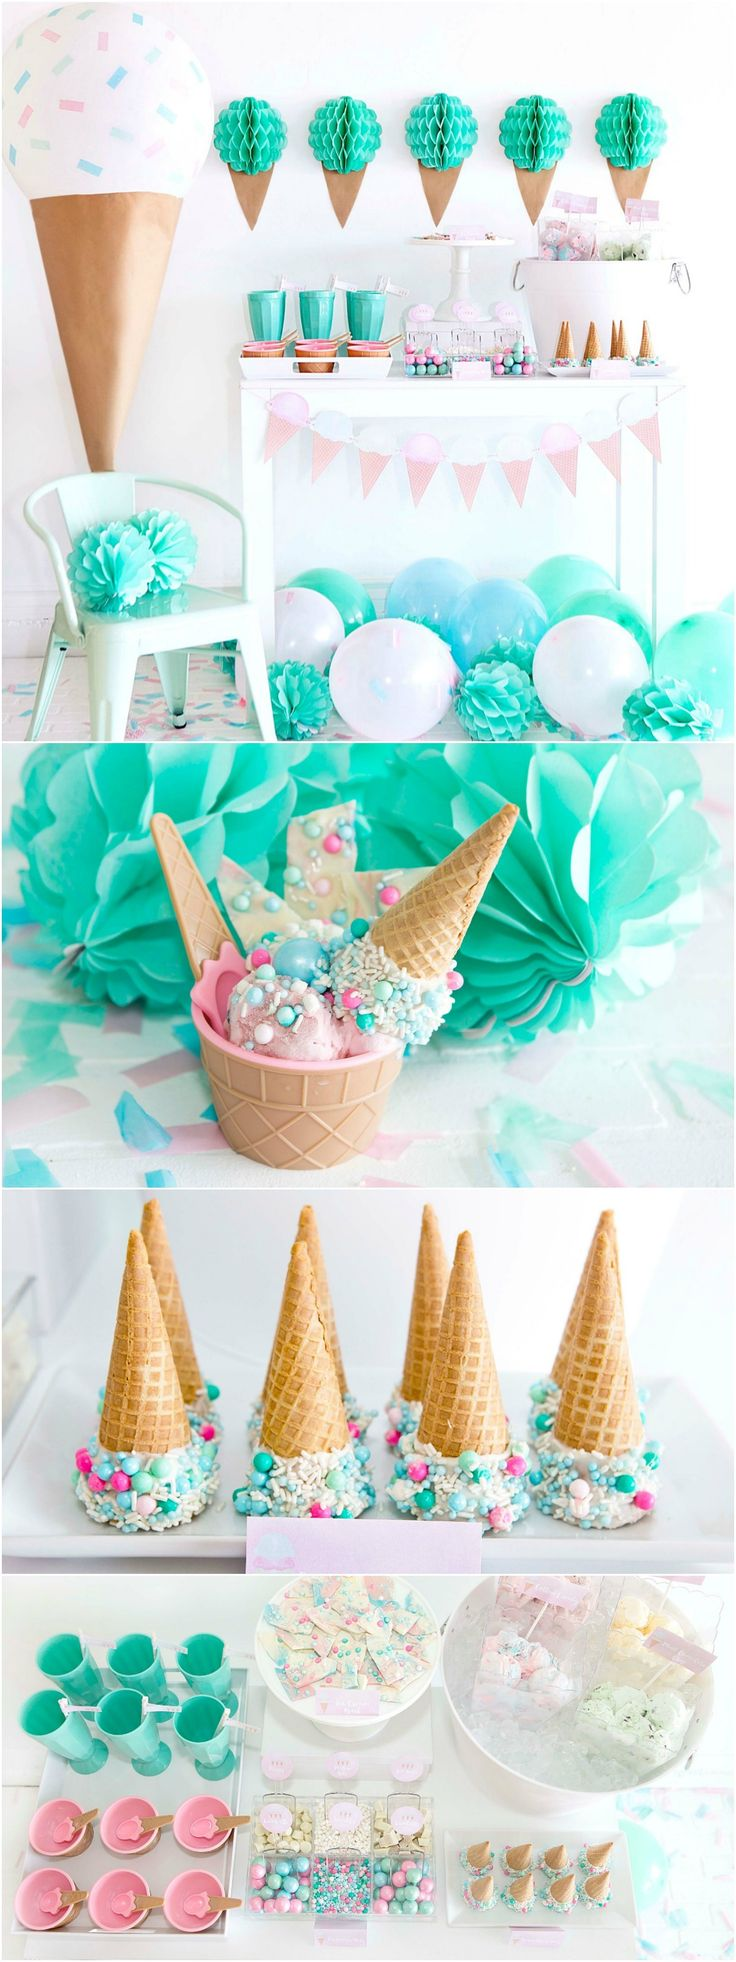 The 25 best Ice cream tumblr ideas on Pinterest Summer pics